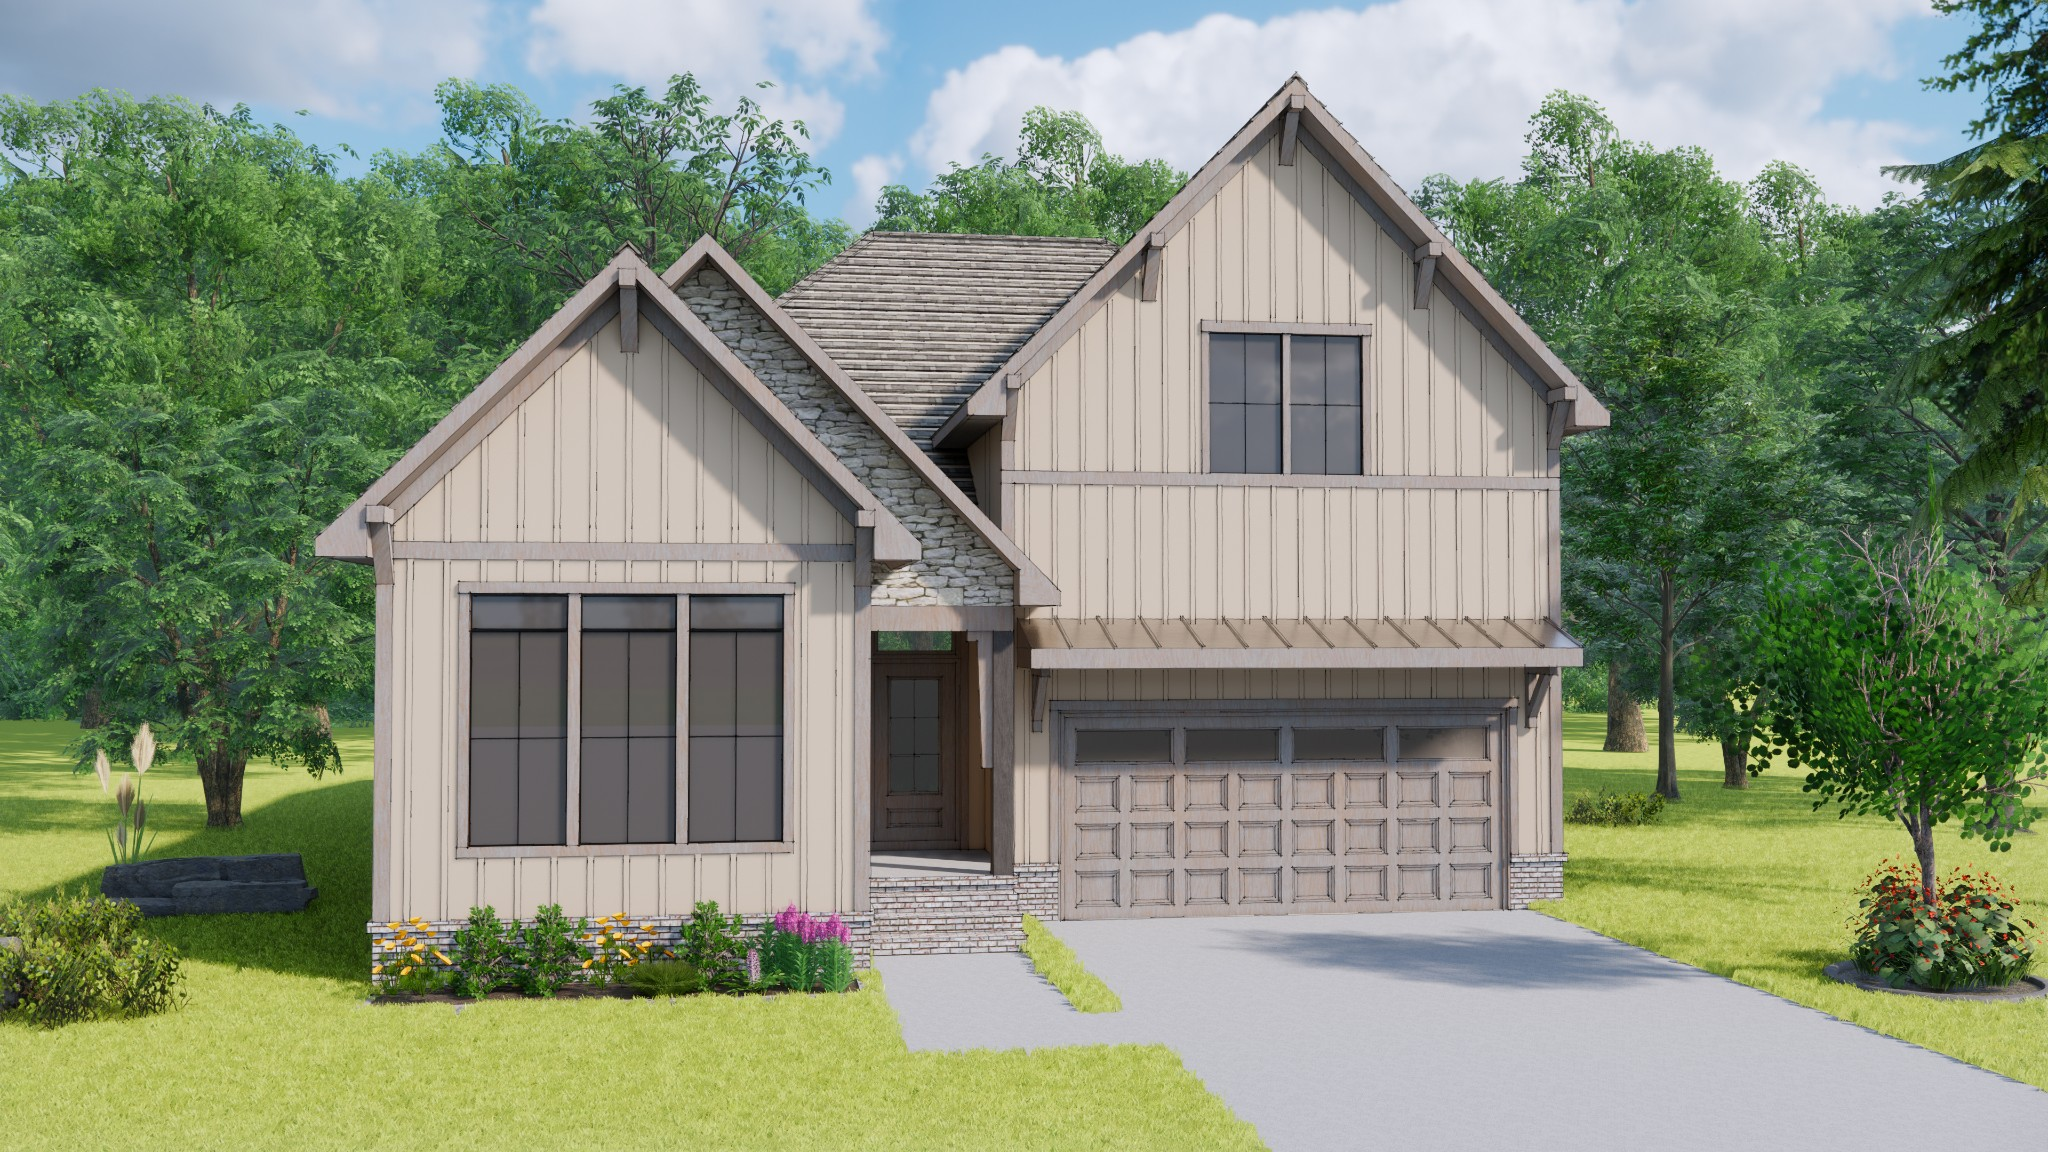 149 Lenham Dr Property Photo - Brentwood, TN real estate listing